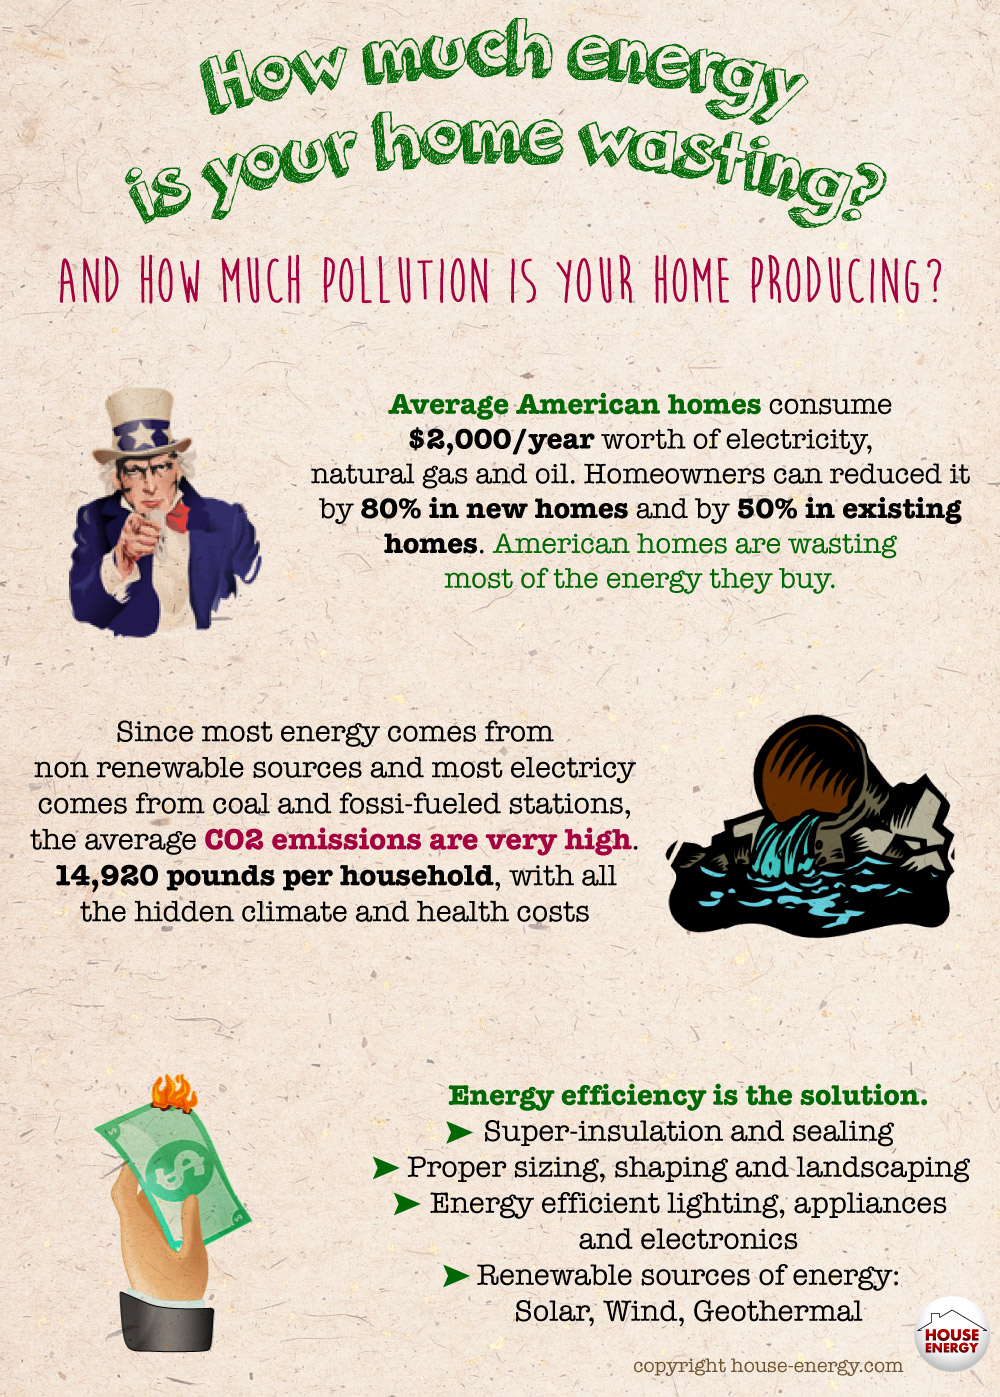 Home Energy Waste, Savings and Pollution